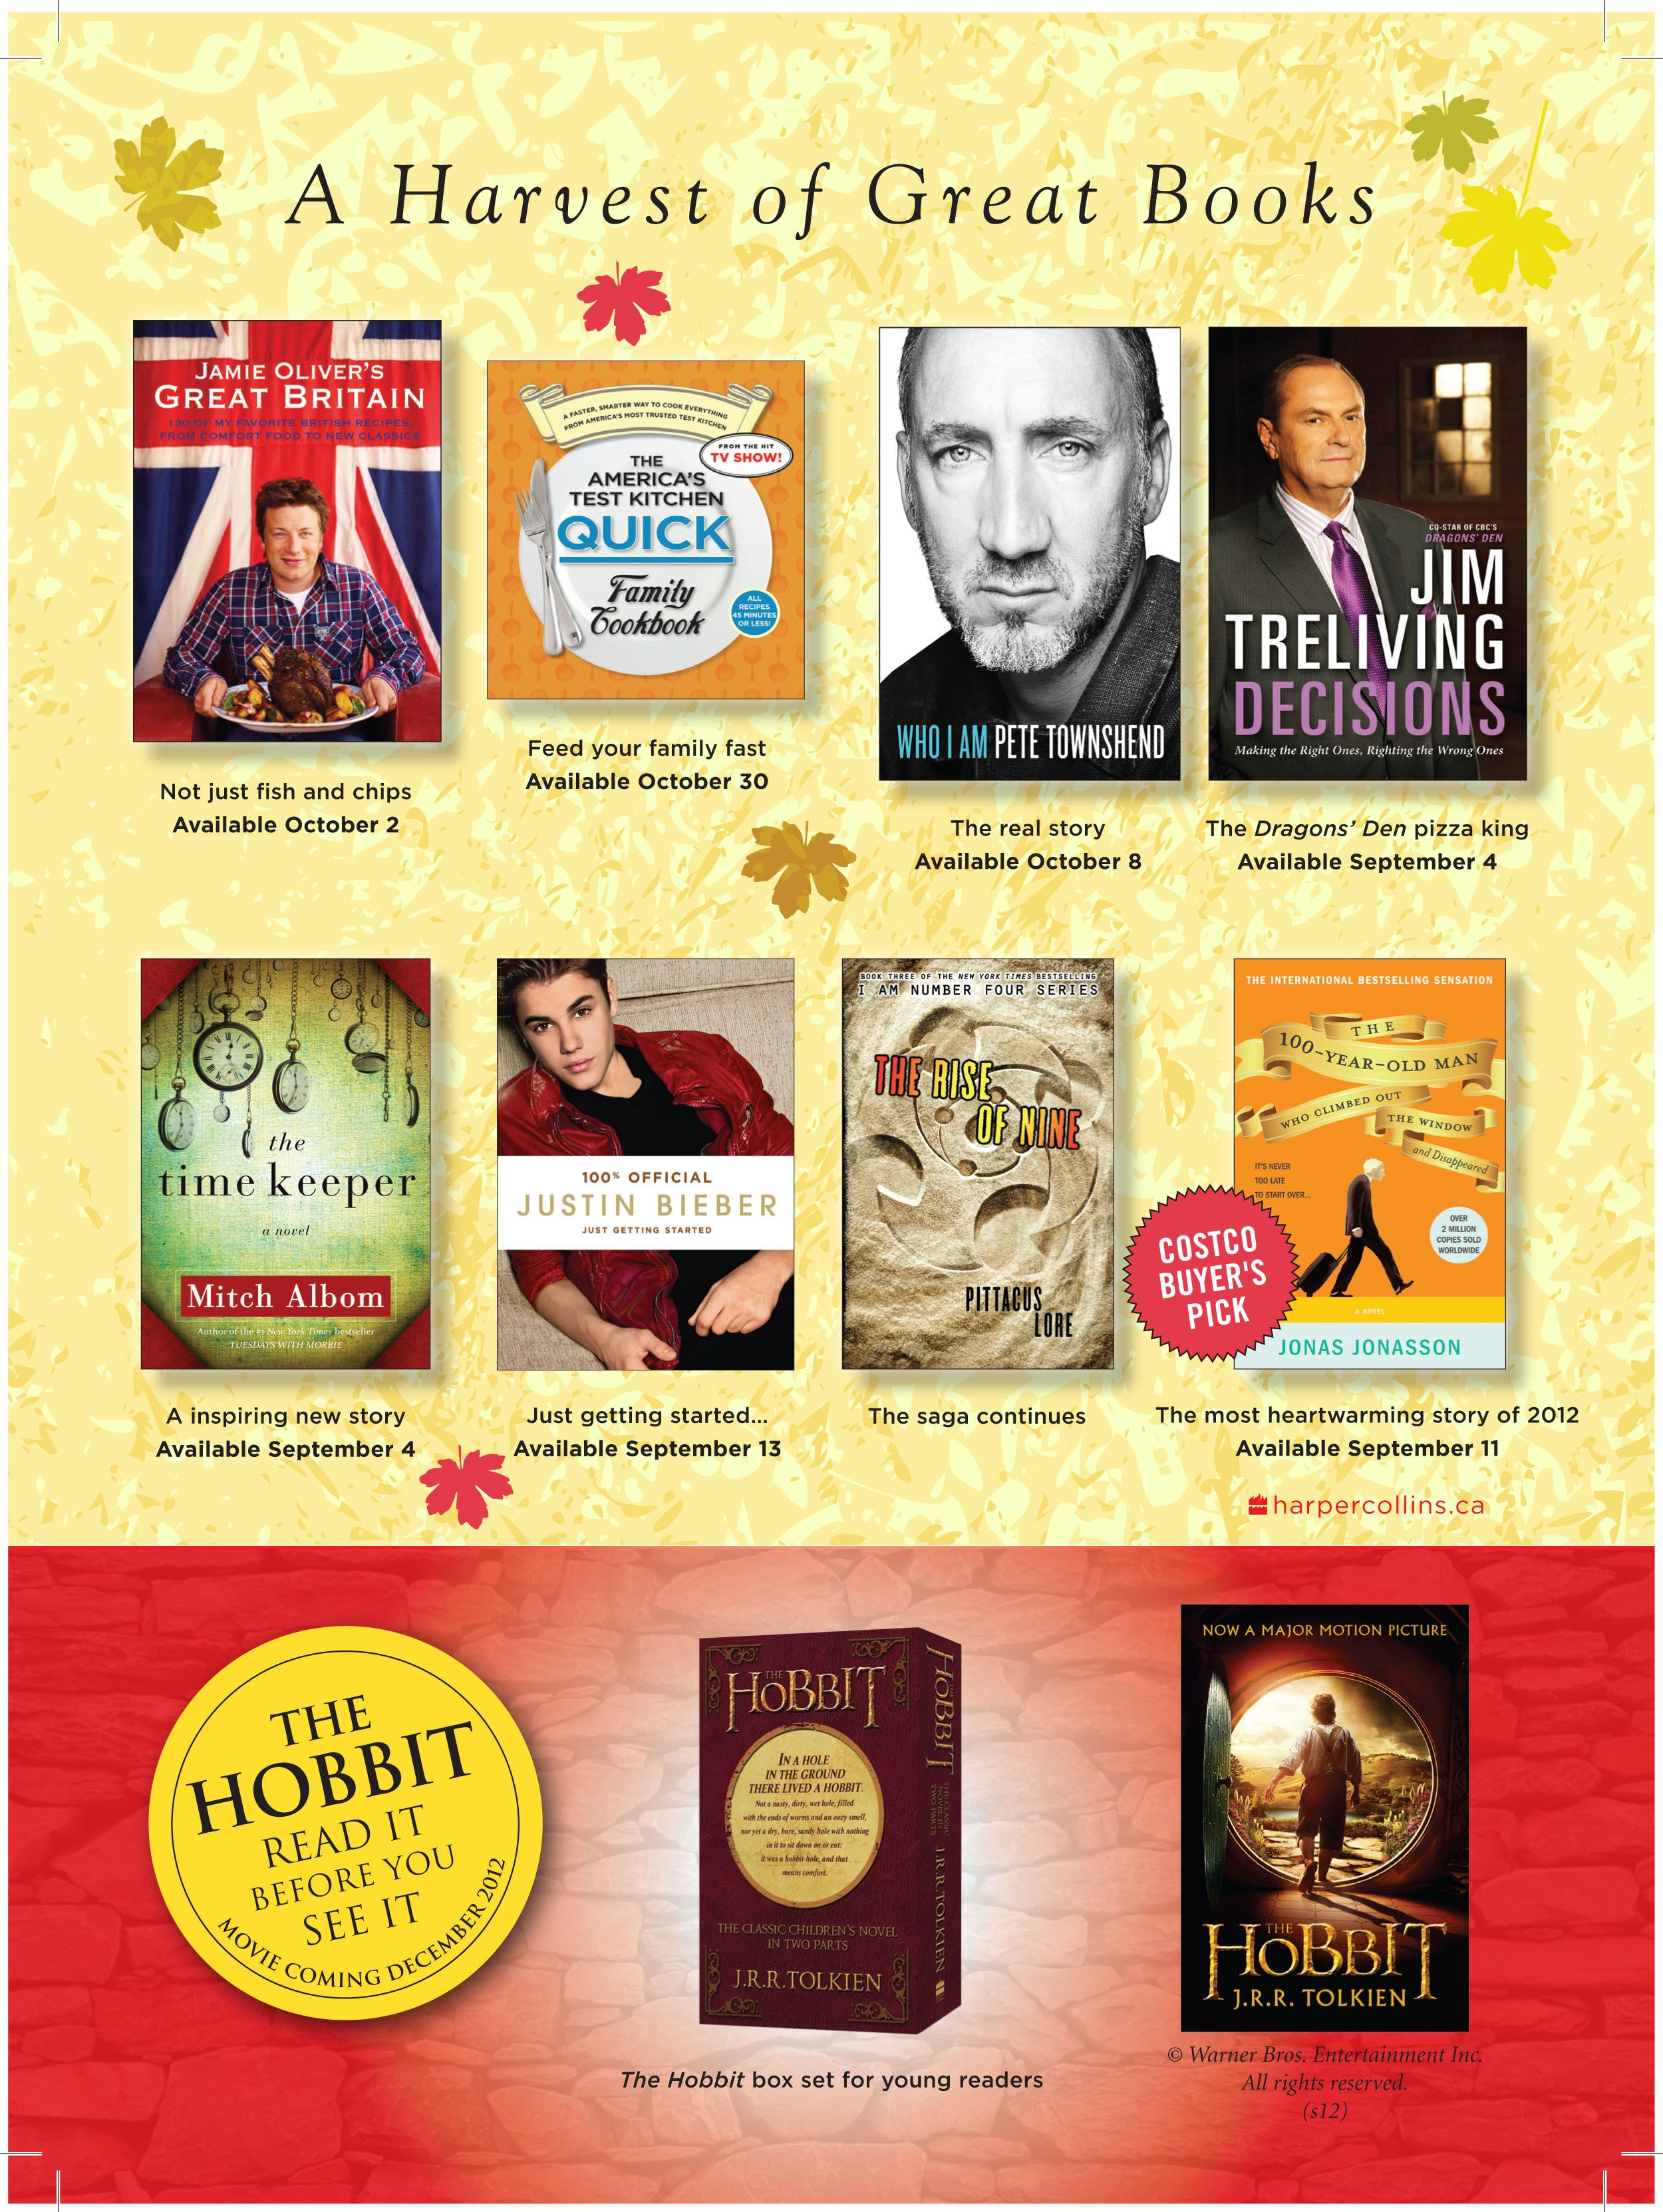 A harvest of great books from HarperCollins Canada for Fall 2012. Fall into reading!